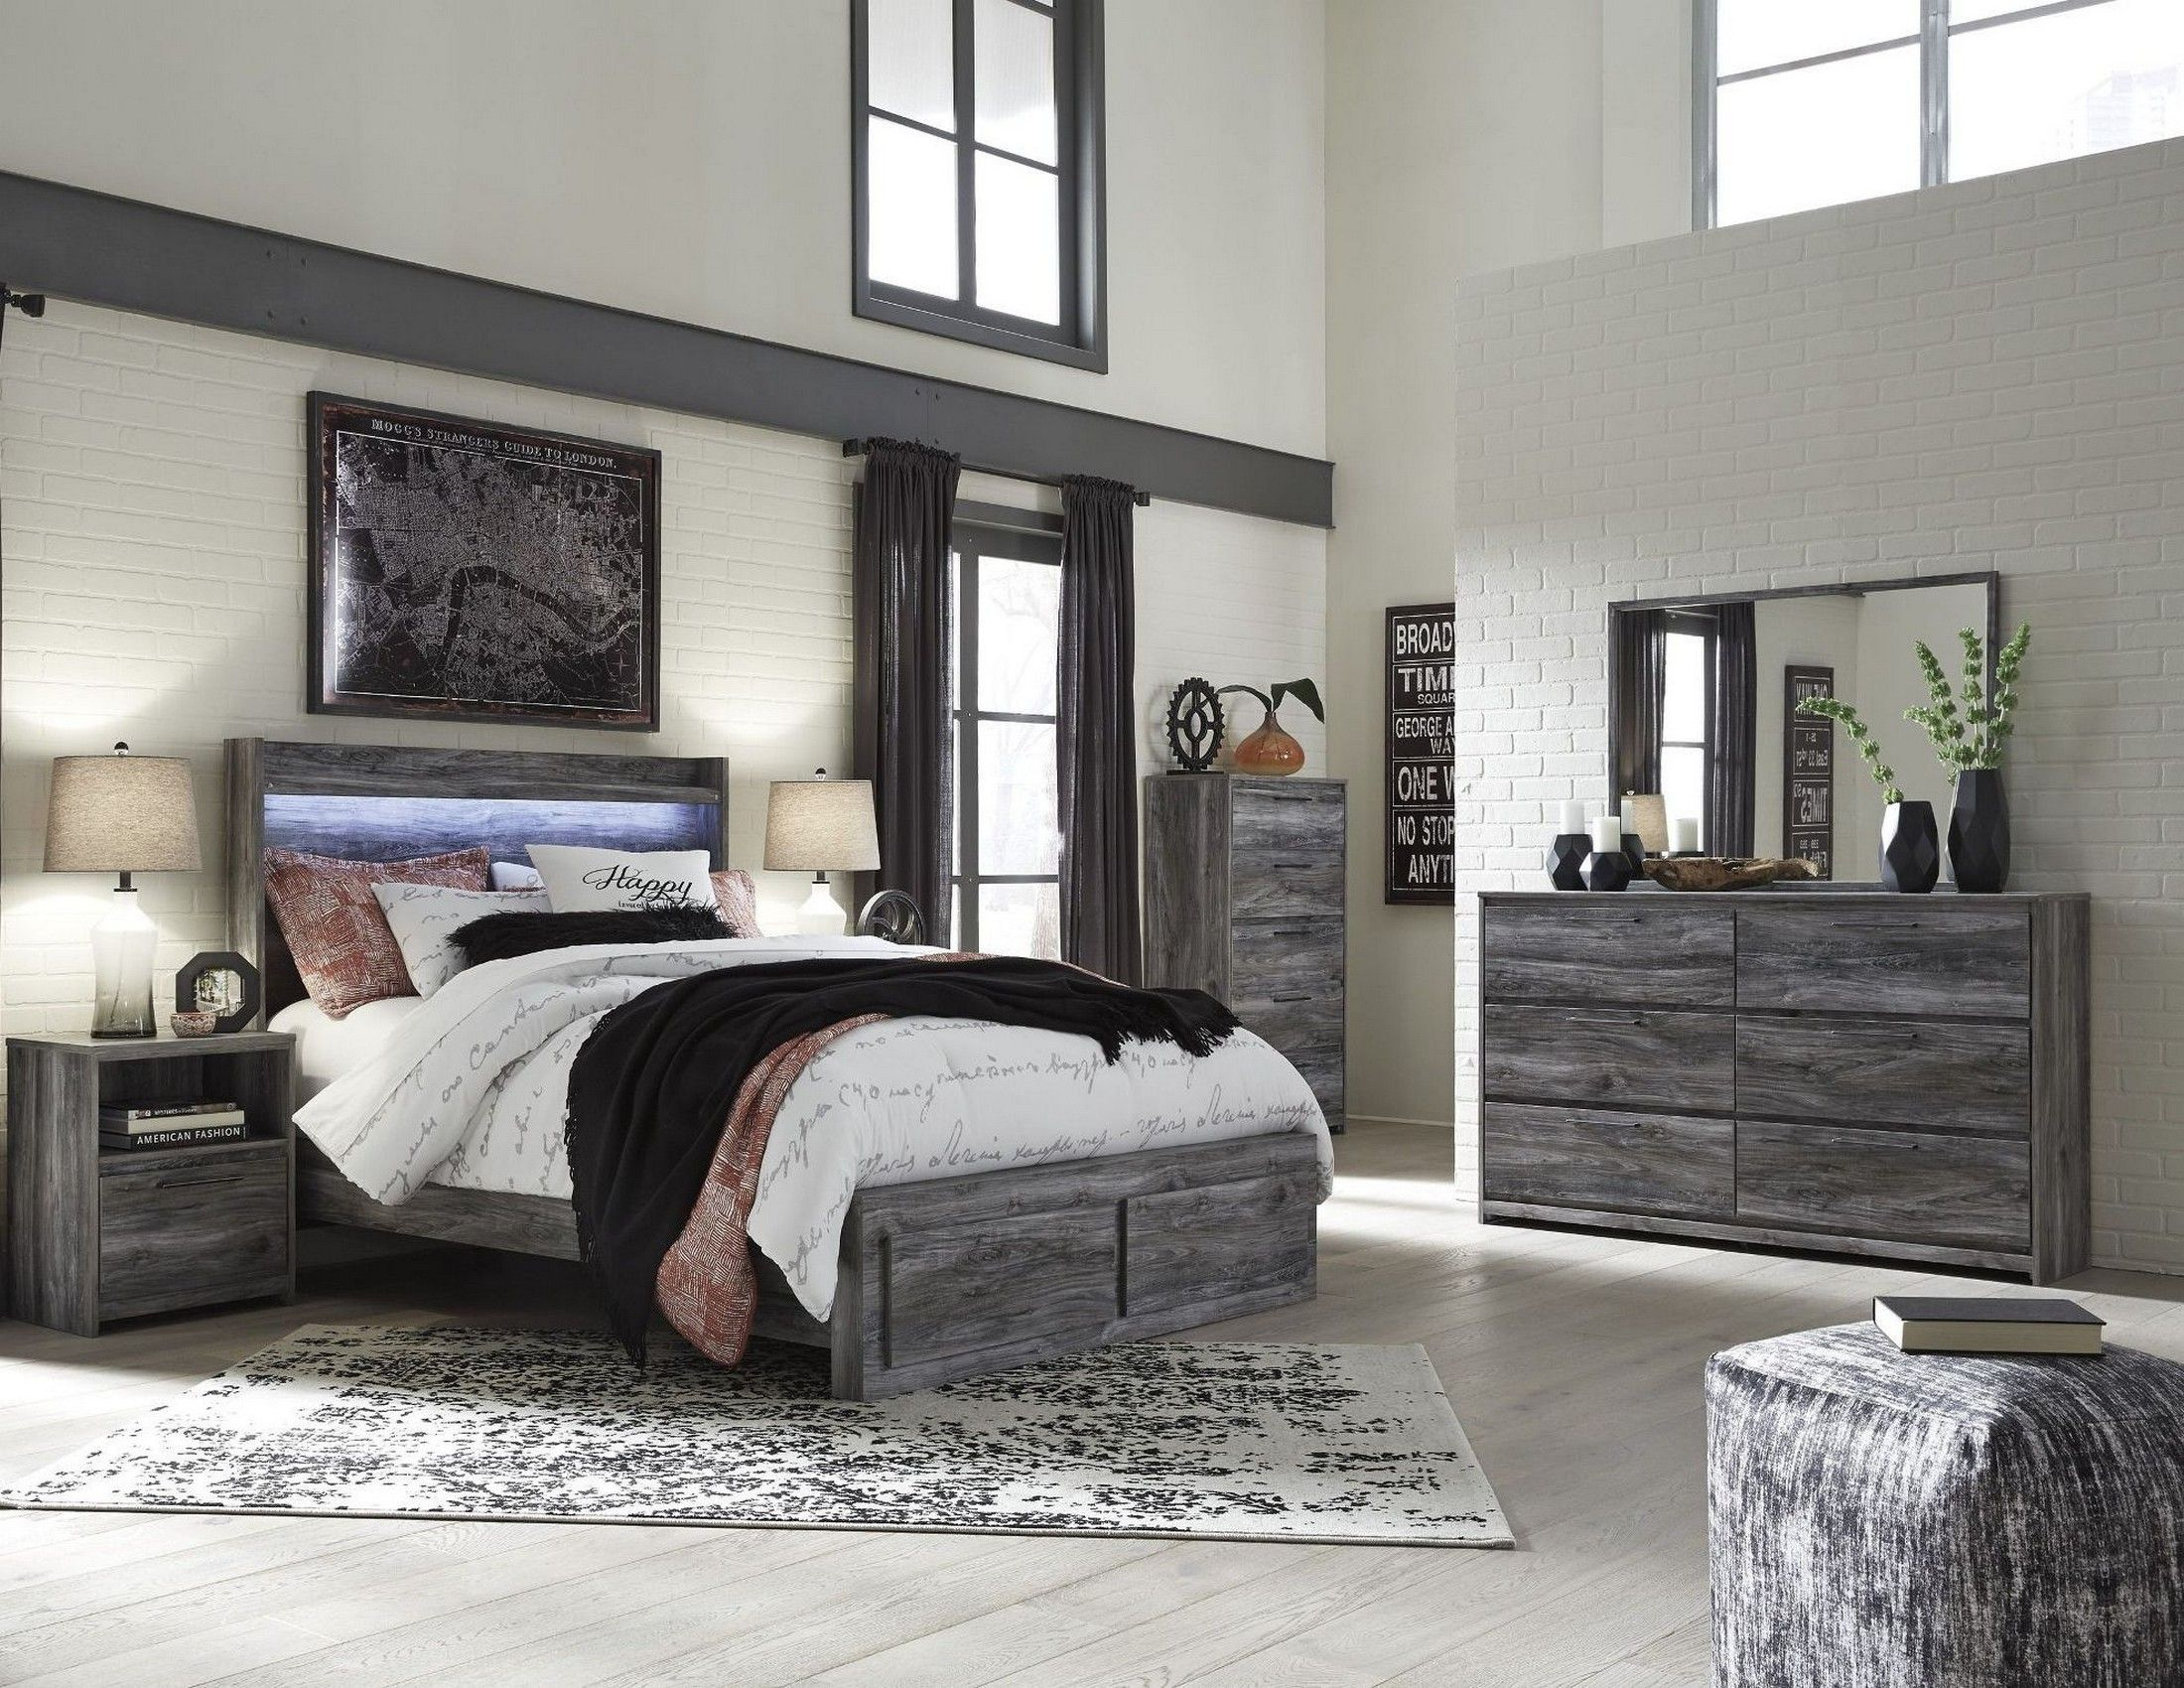 Pin by Shauna Watson on Future Home Ideas Bedroom sets